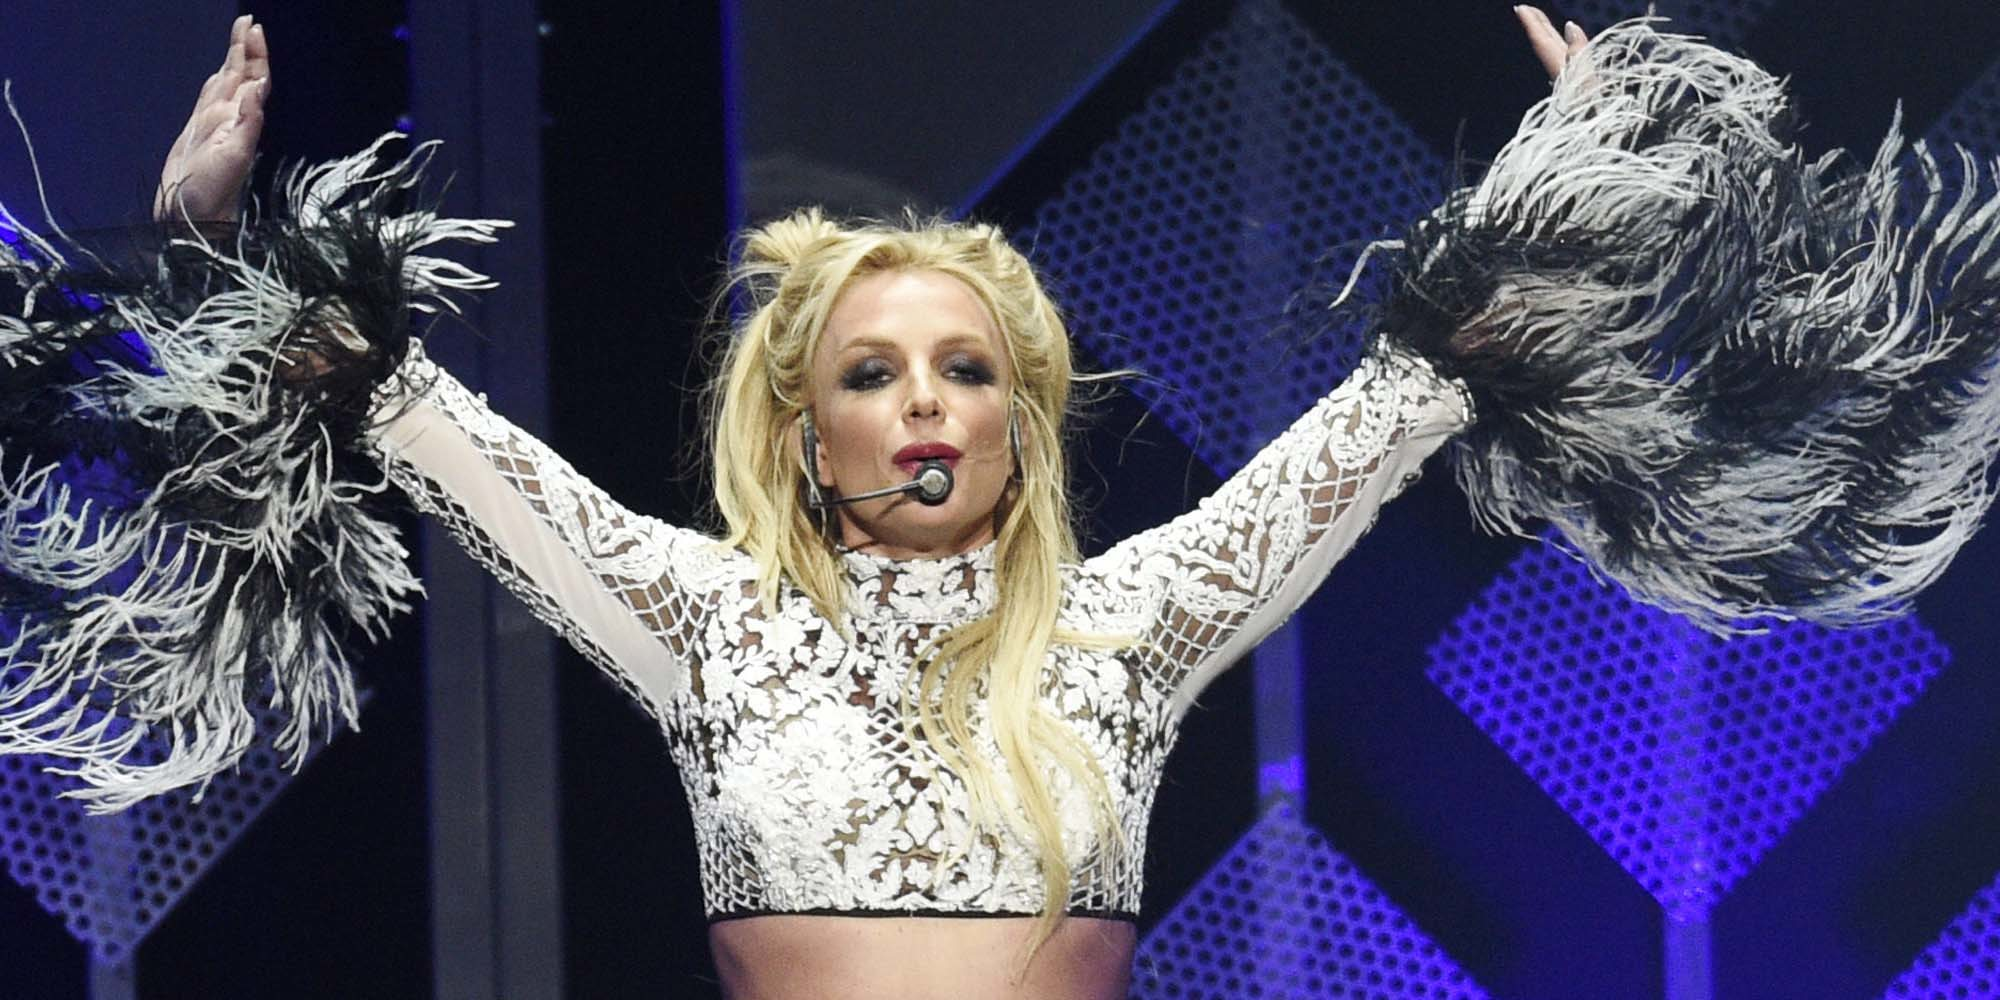 Britney Spears unirá fuerzas con Pitbull y Marc Anthony en un nuevo single